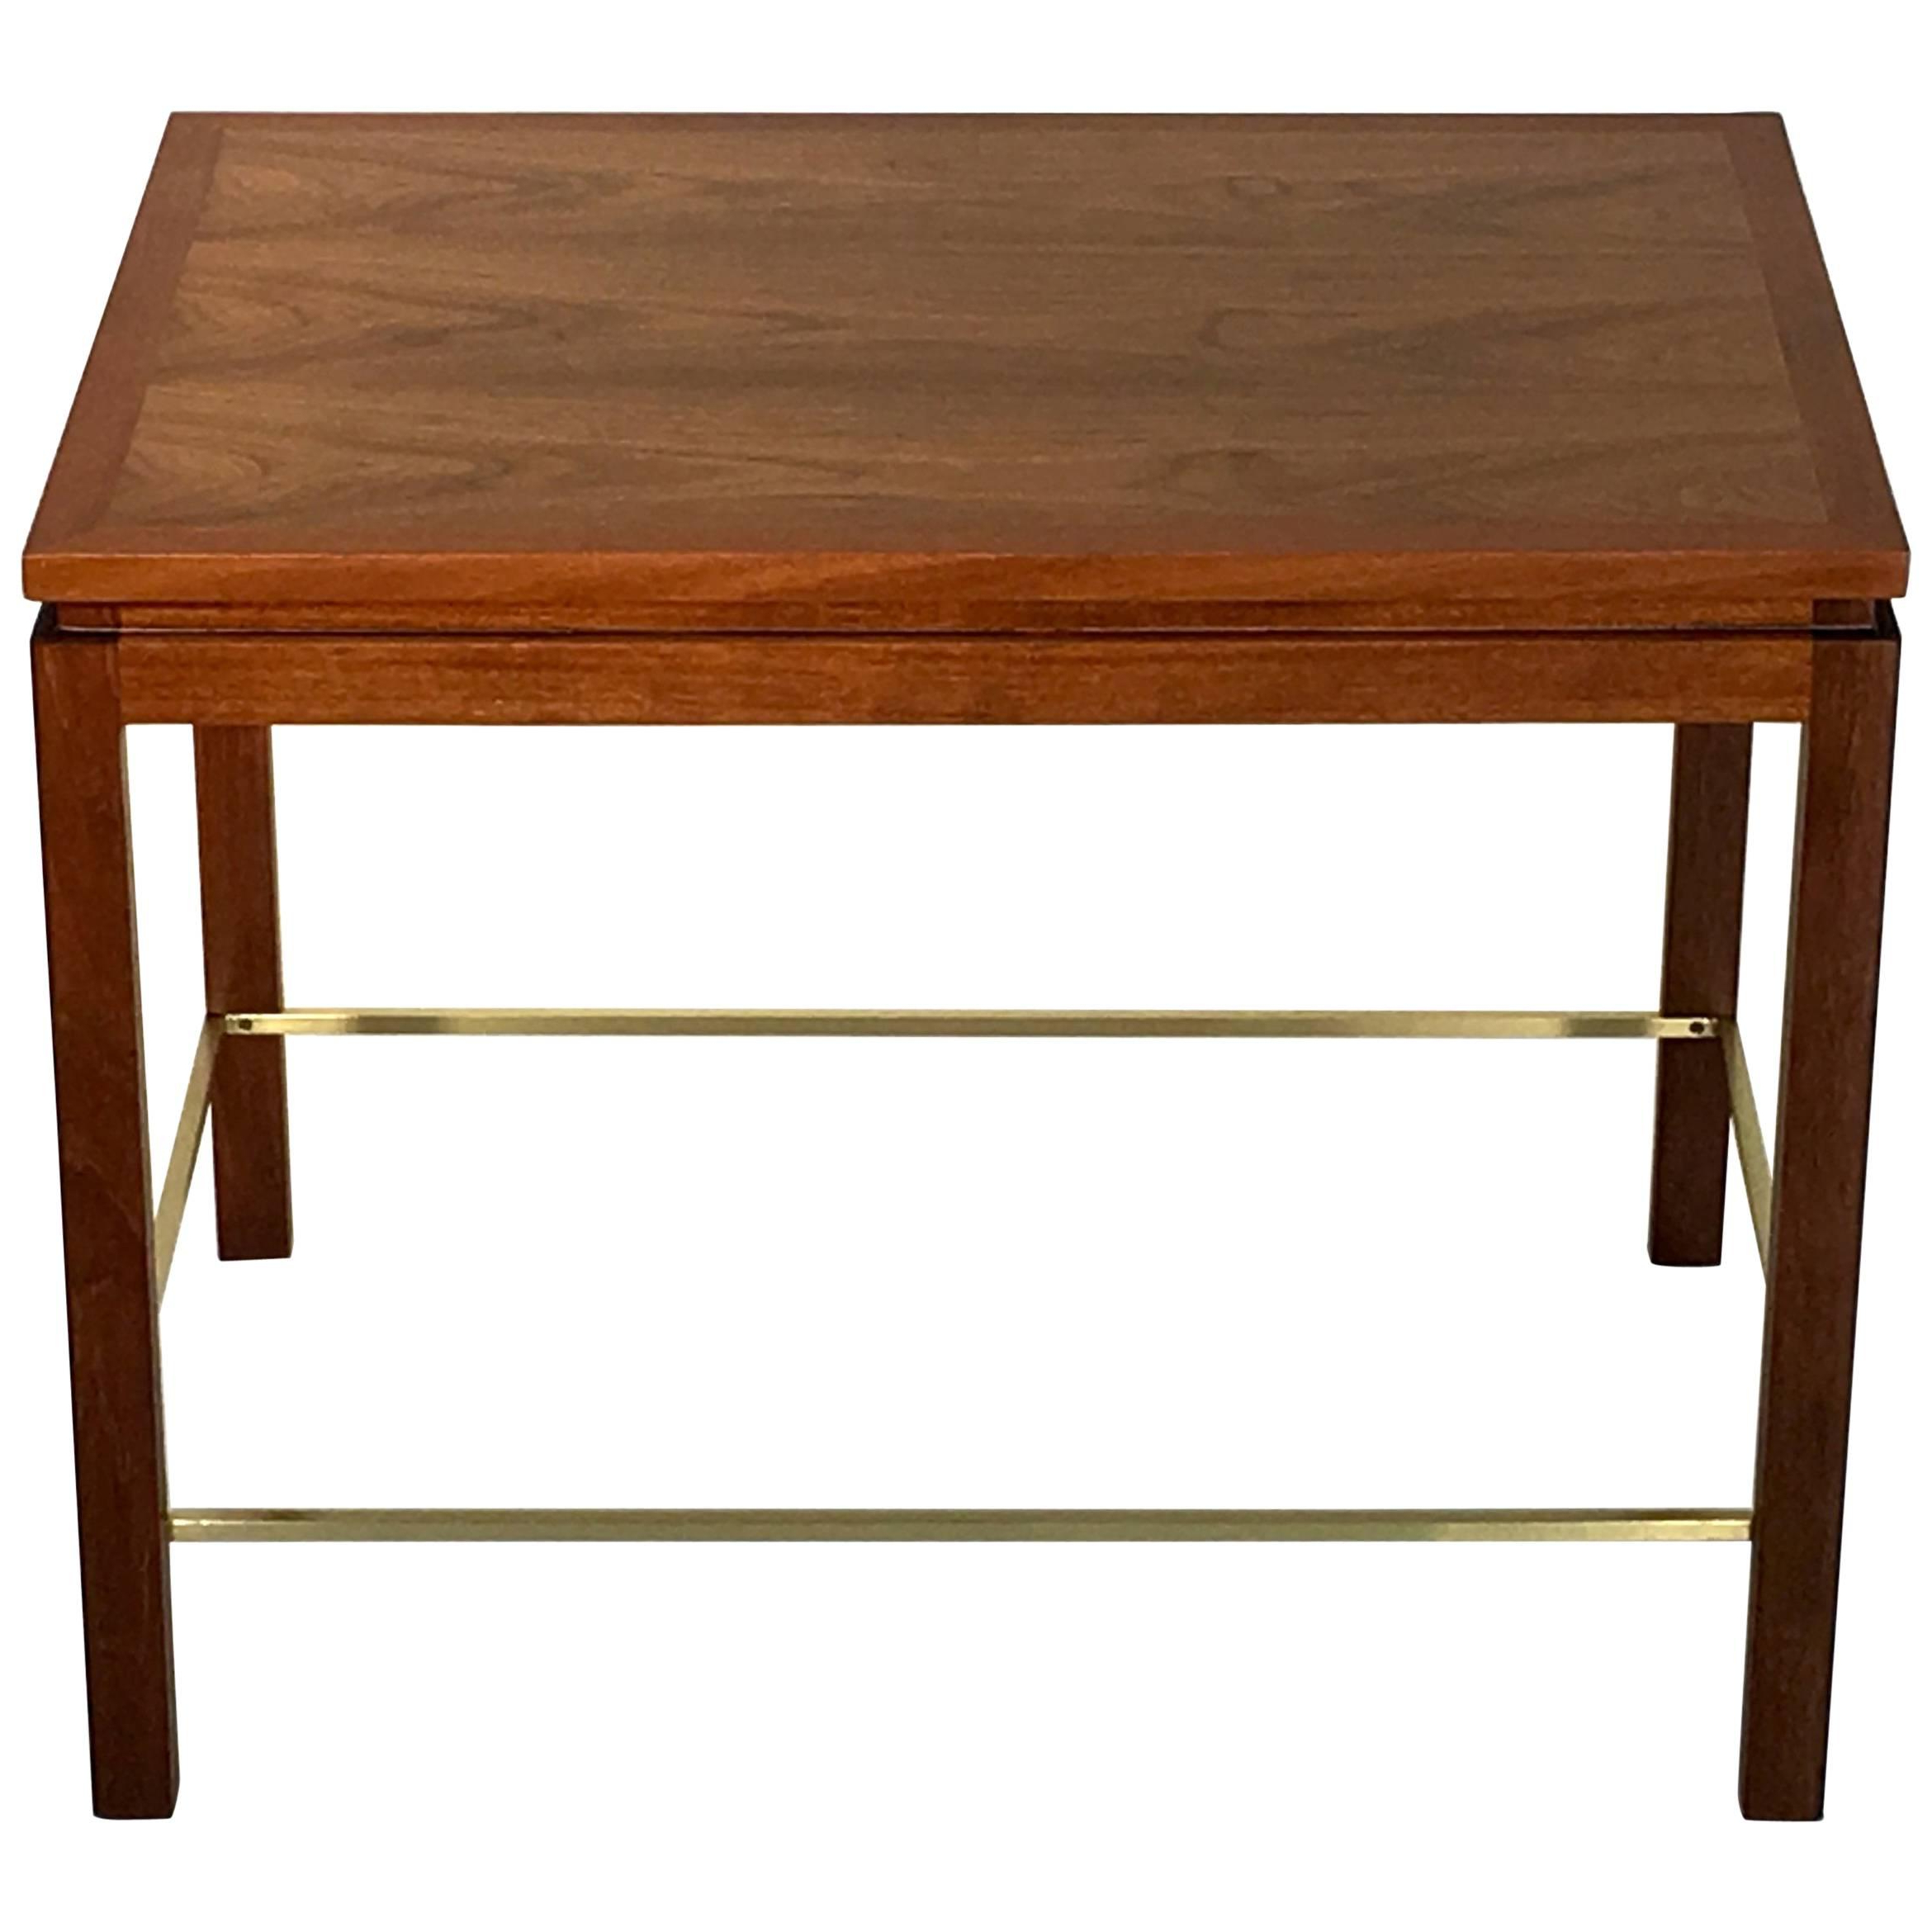 Dunbar Furniture Console Tables – 25 For Sale At 1stdibs Within Oak & Brass Stacking Media Console Tables (View 12 of 20)